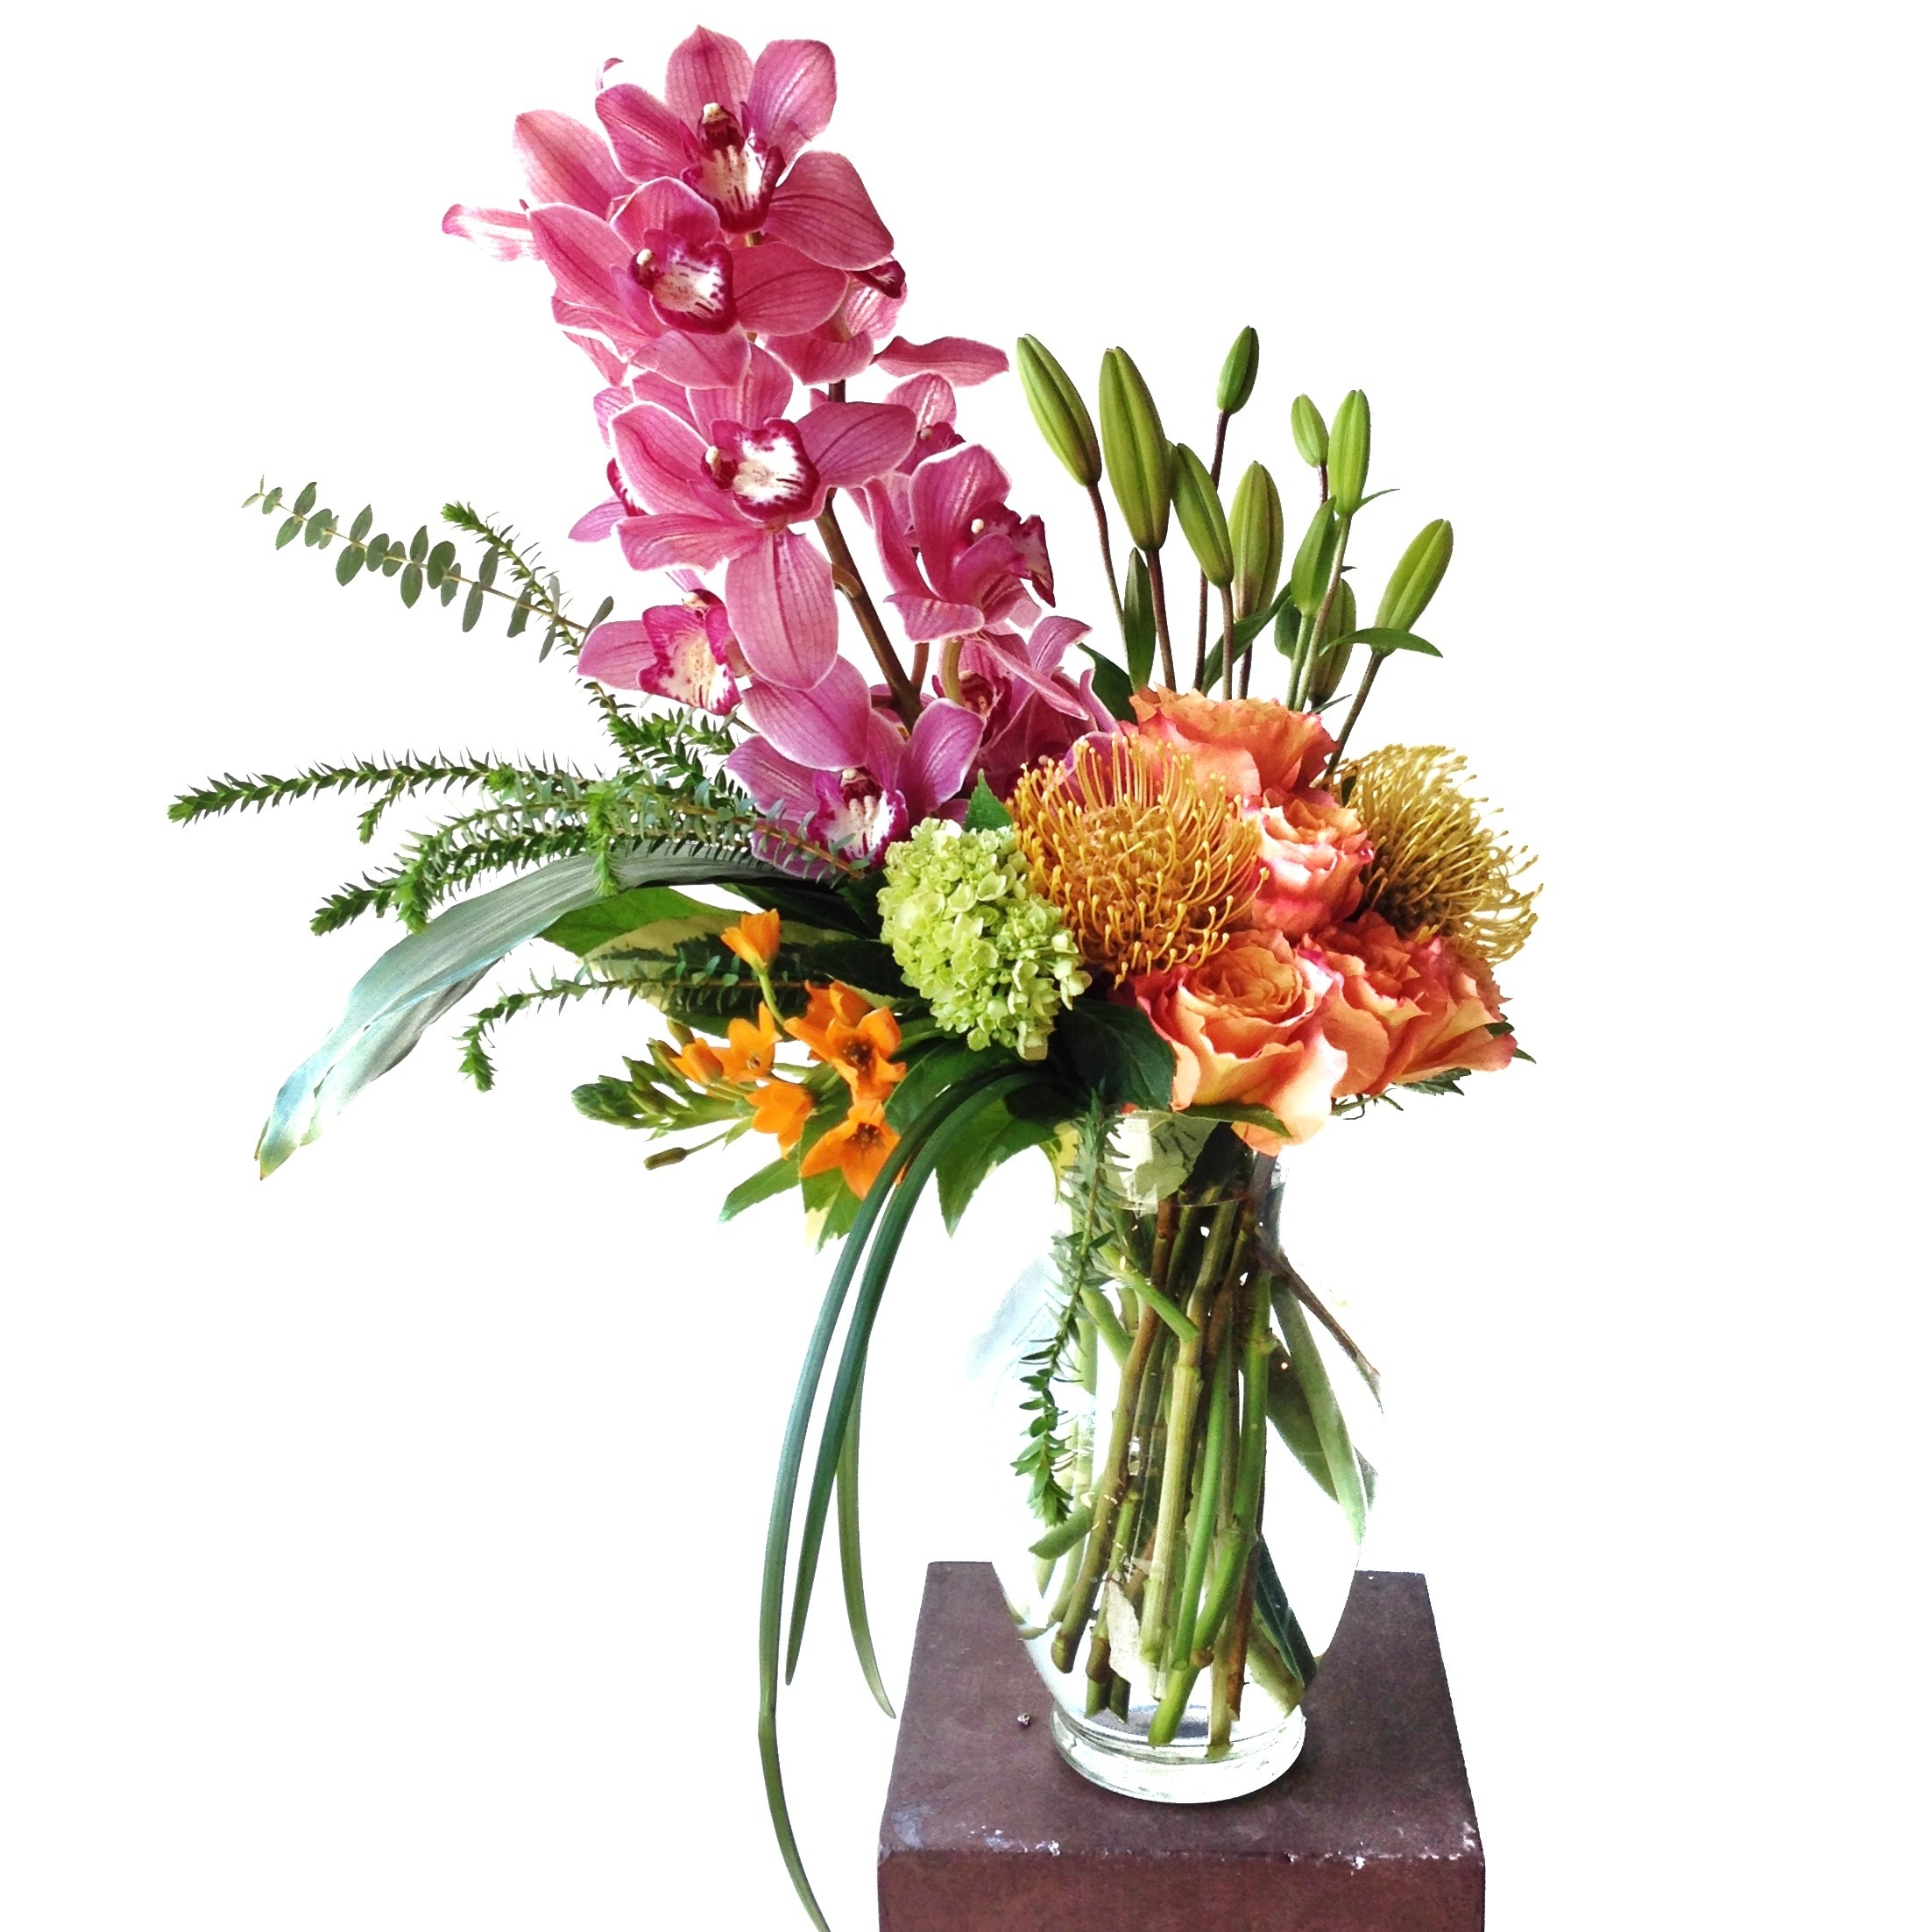 Beards Floral Design Wichita Florist